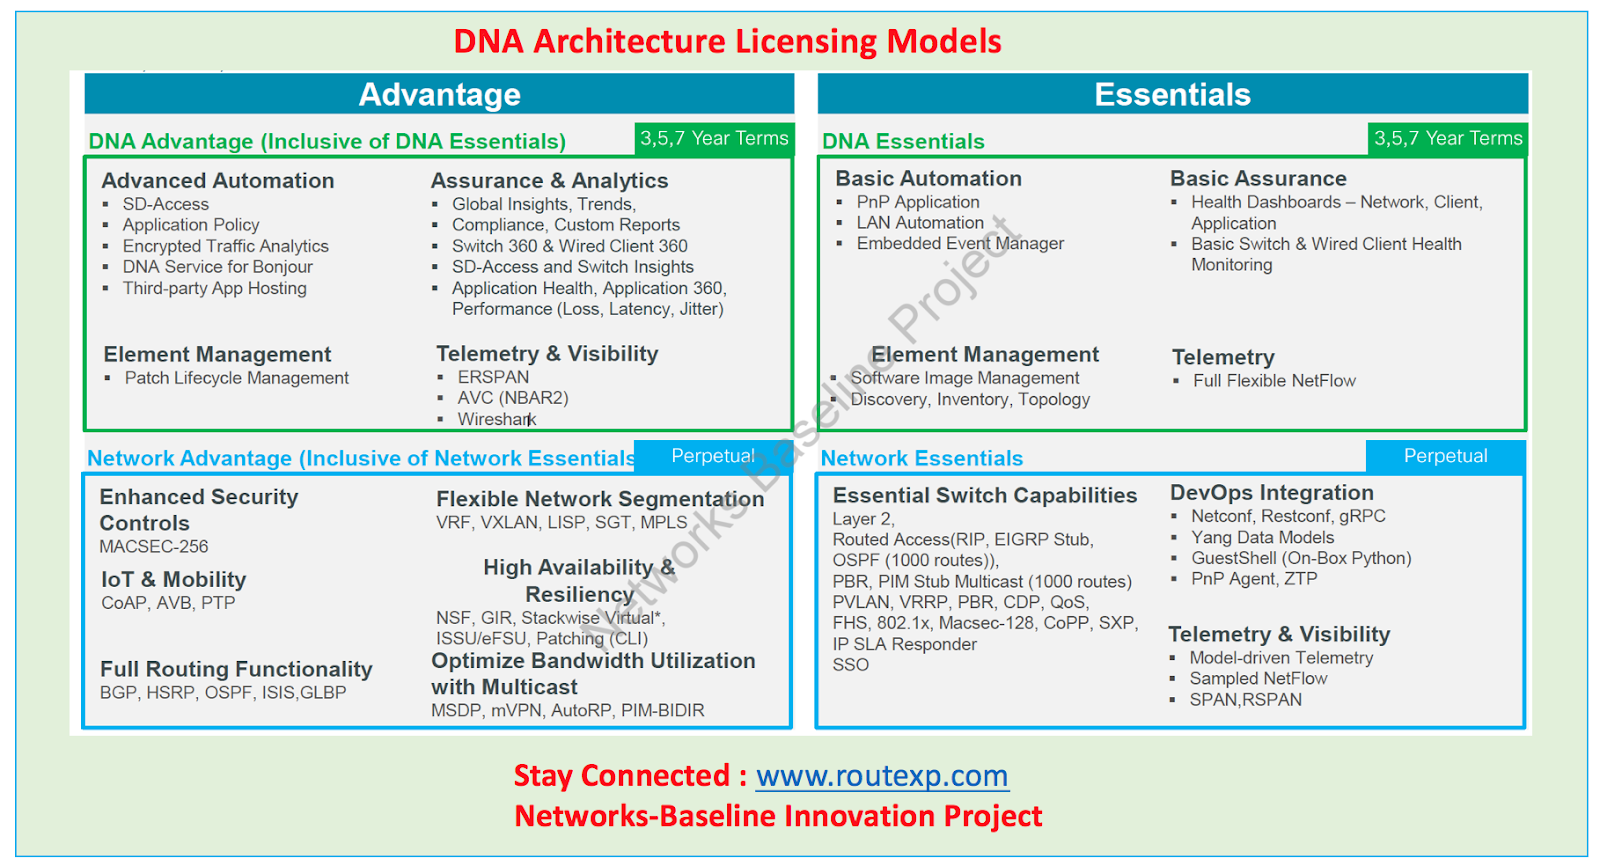 Cisco DNA: Advantage License Vs Essential License - Route XP